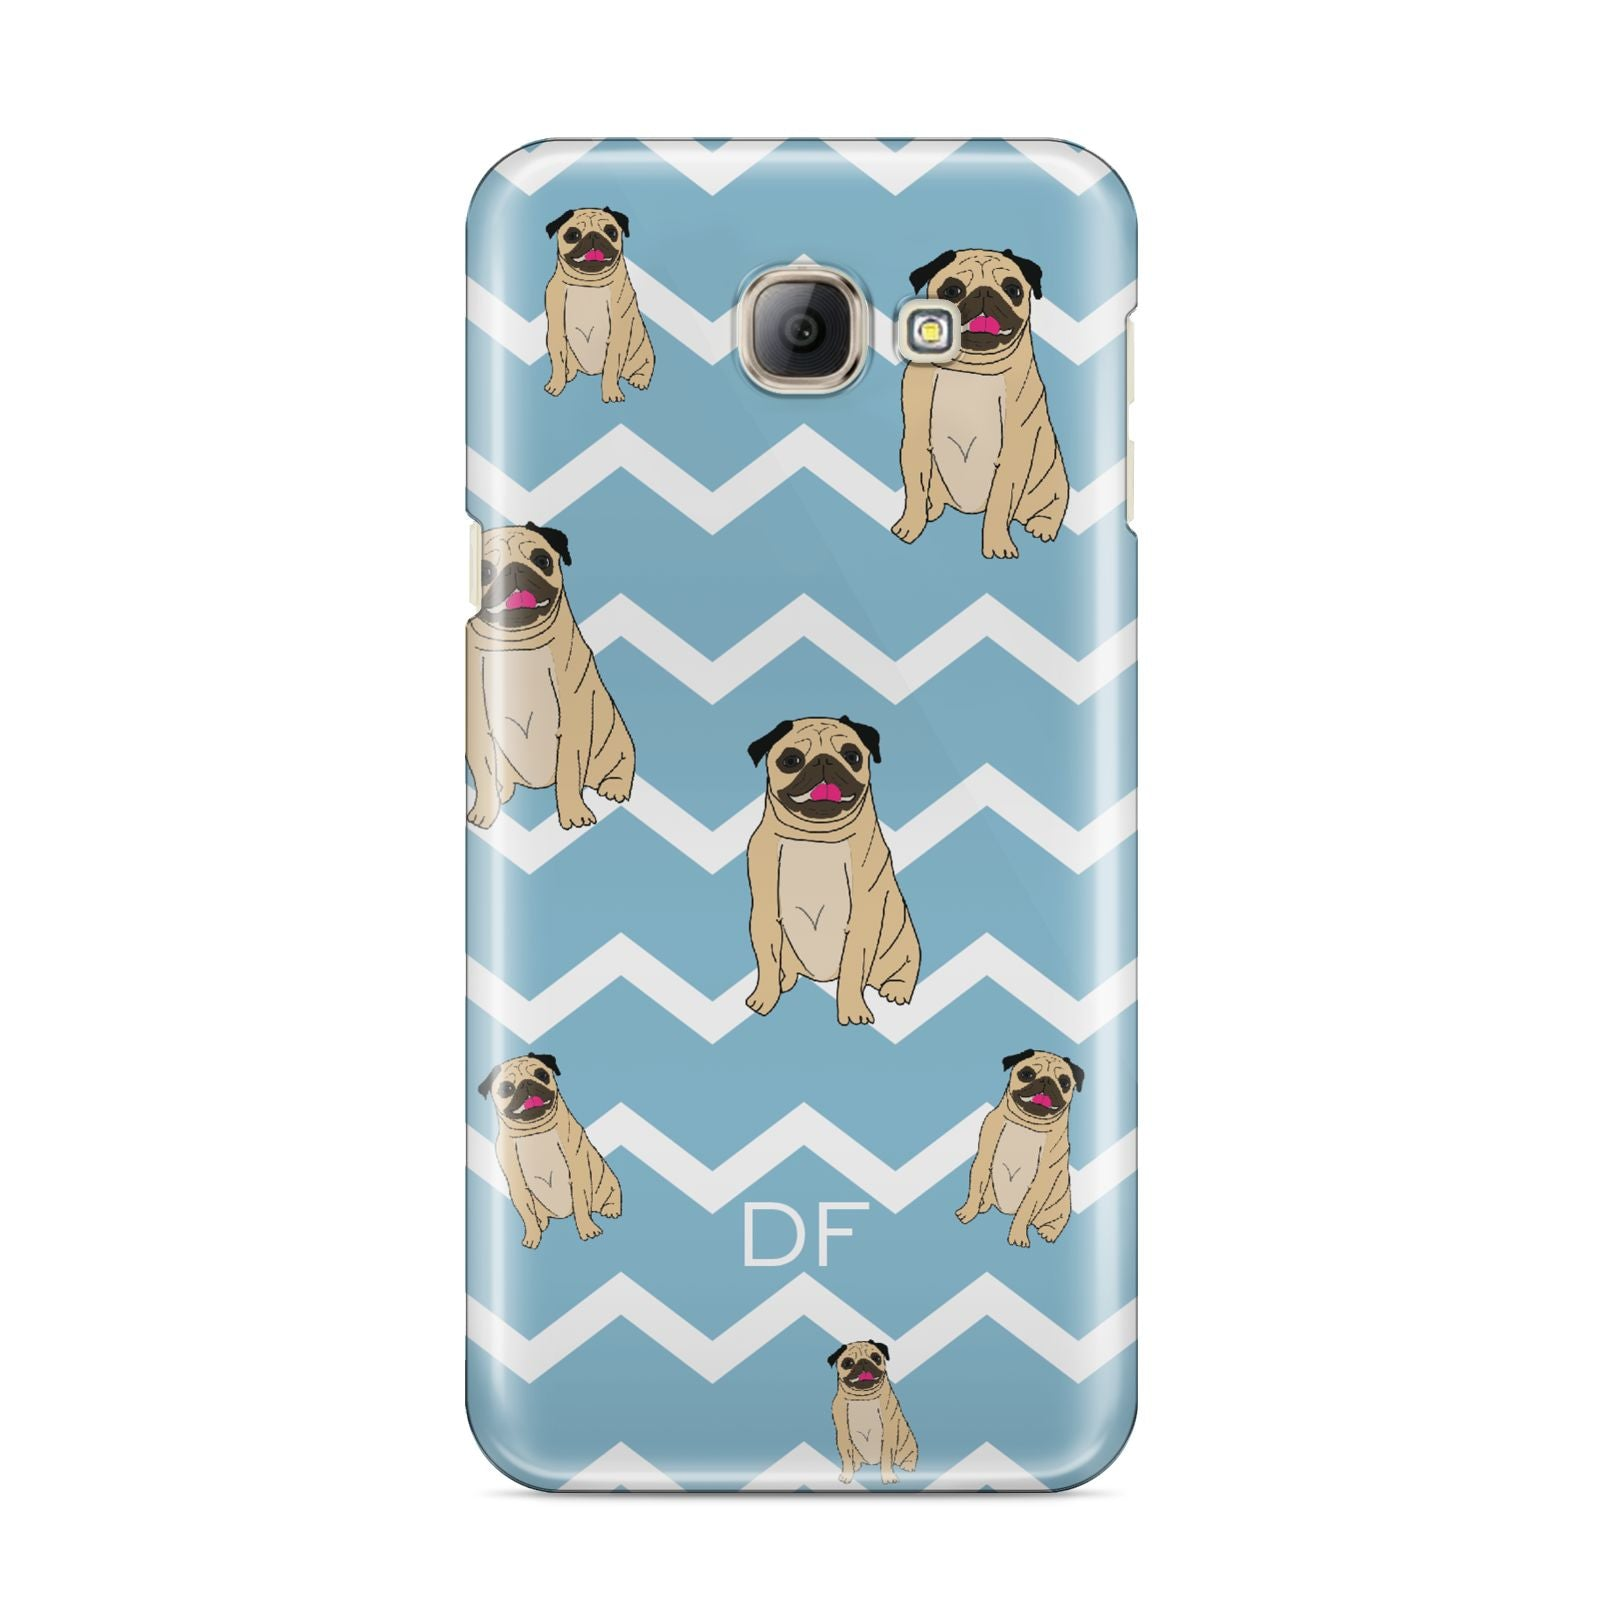 Personalised Pug Initials Samsung Galaxy A8 2016 Case